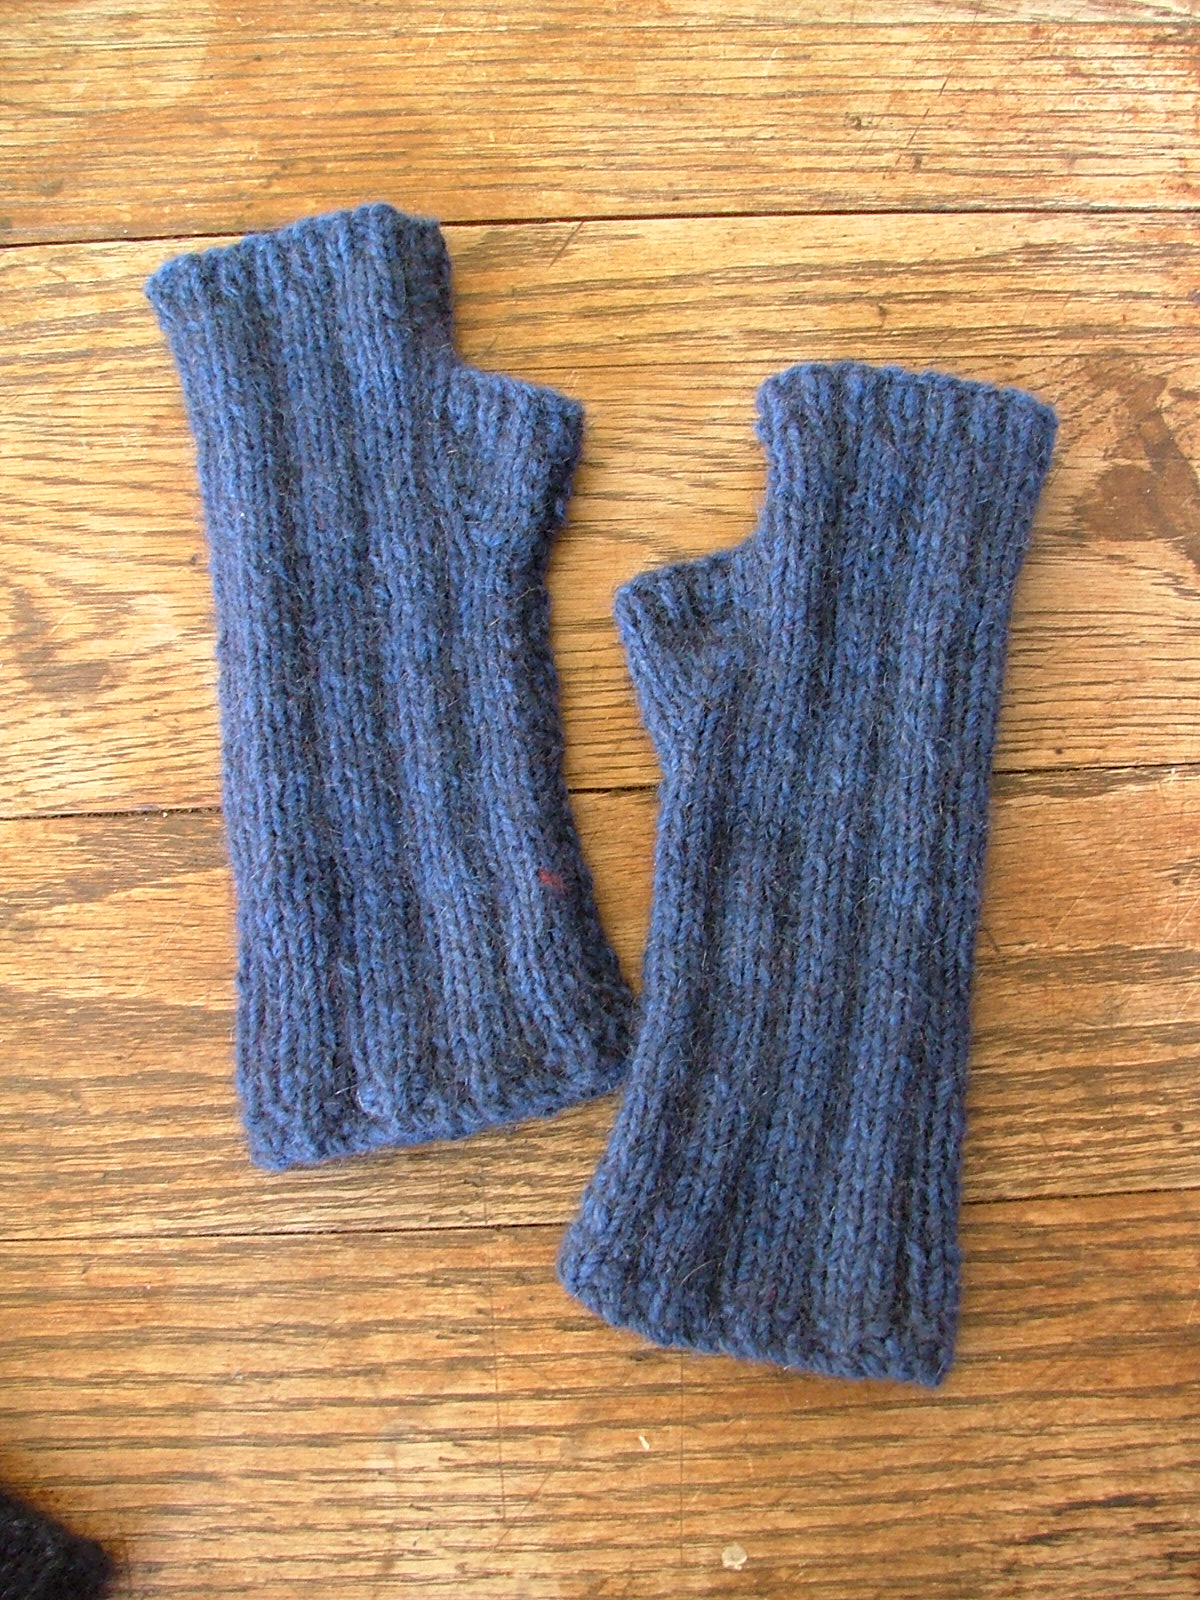 Fingerless Gloves Knitting Pattern Nz : Possum/merino fingerless mittens Felt